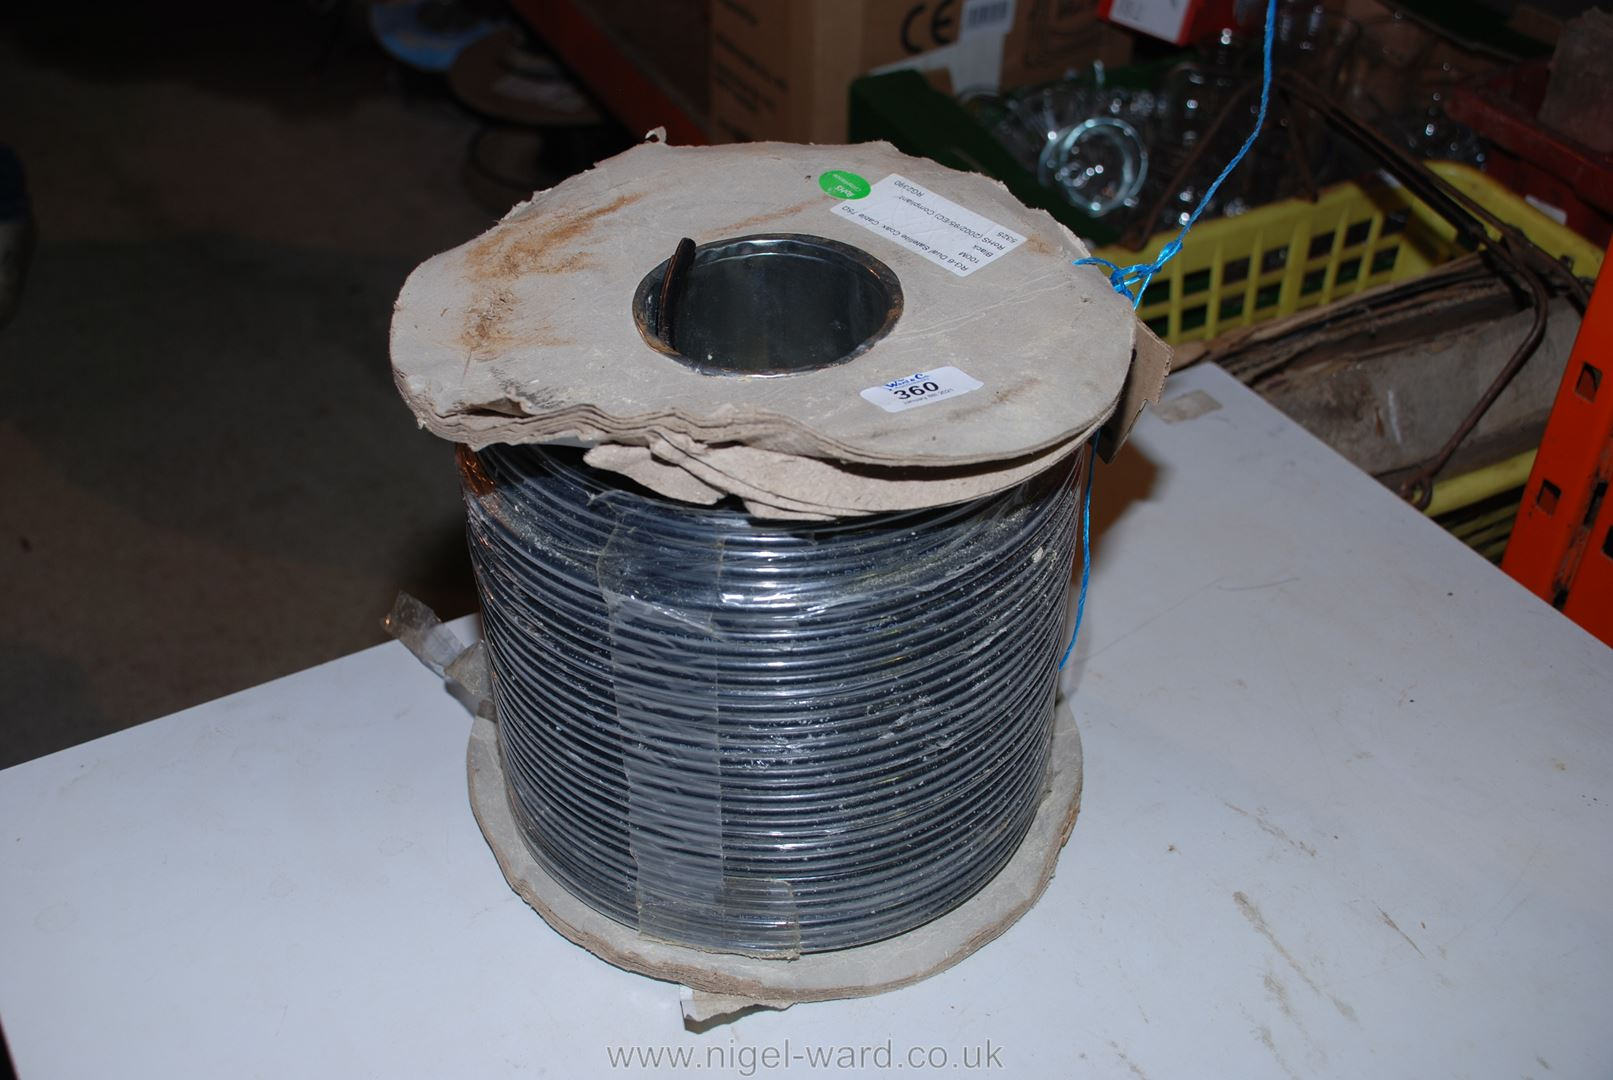 A roll of twin core 75 ohm satellite coaxial cable.